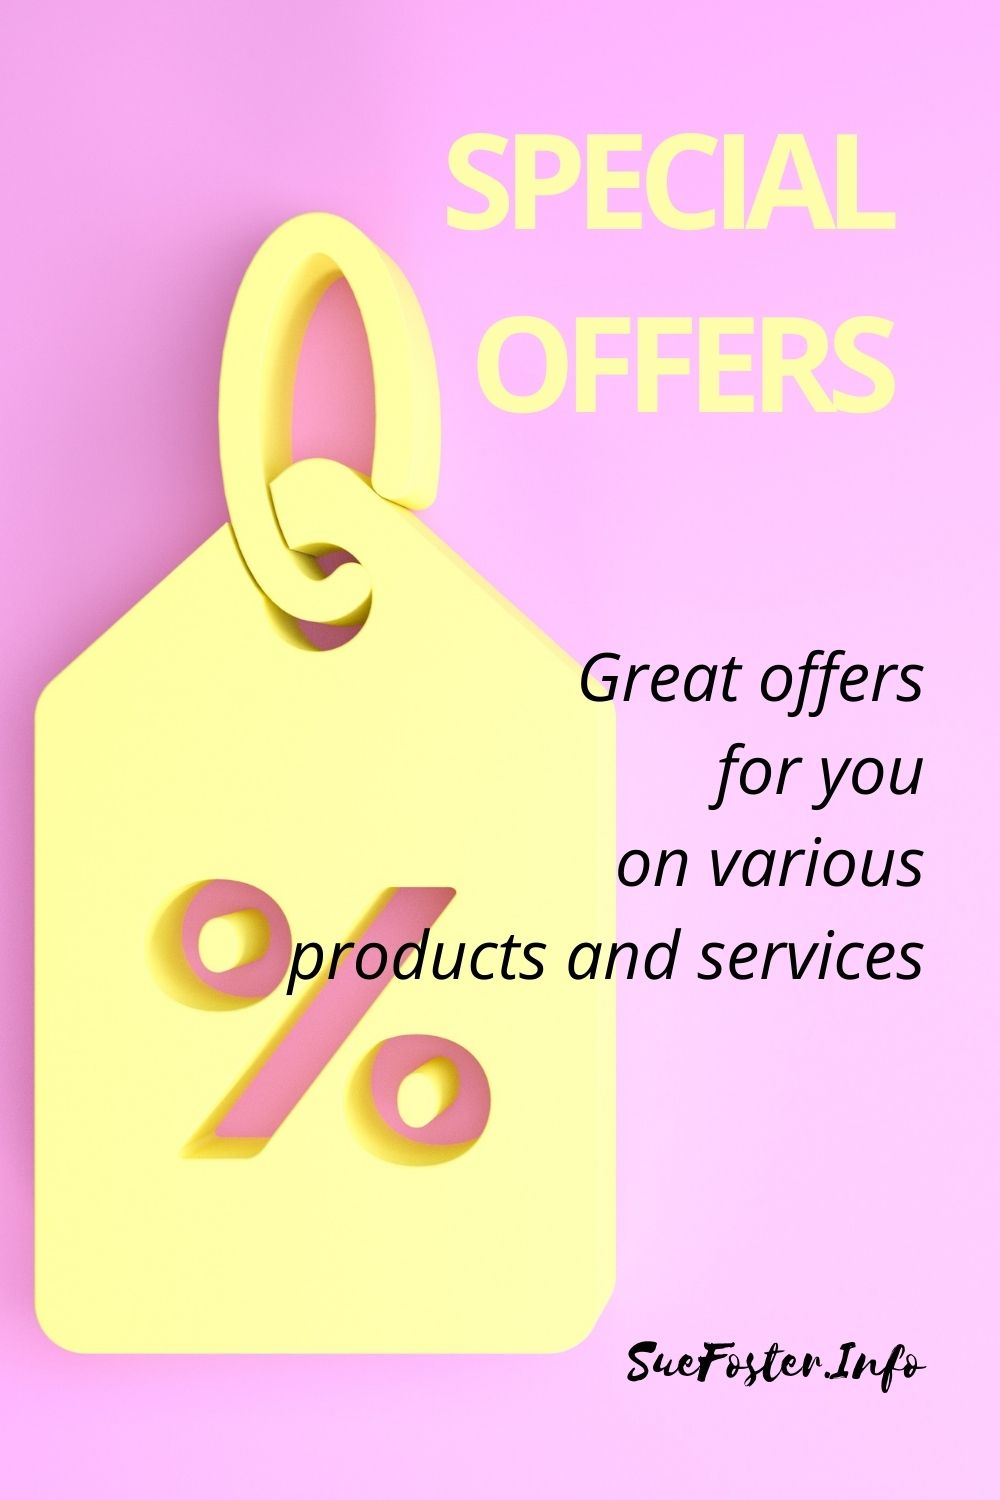 Special Offers - Great offers for you on various products and services.